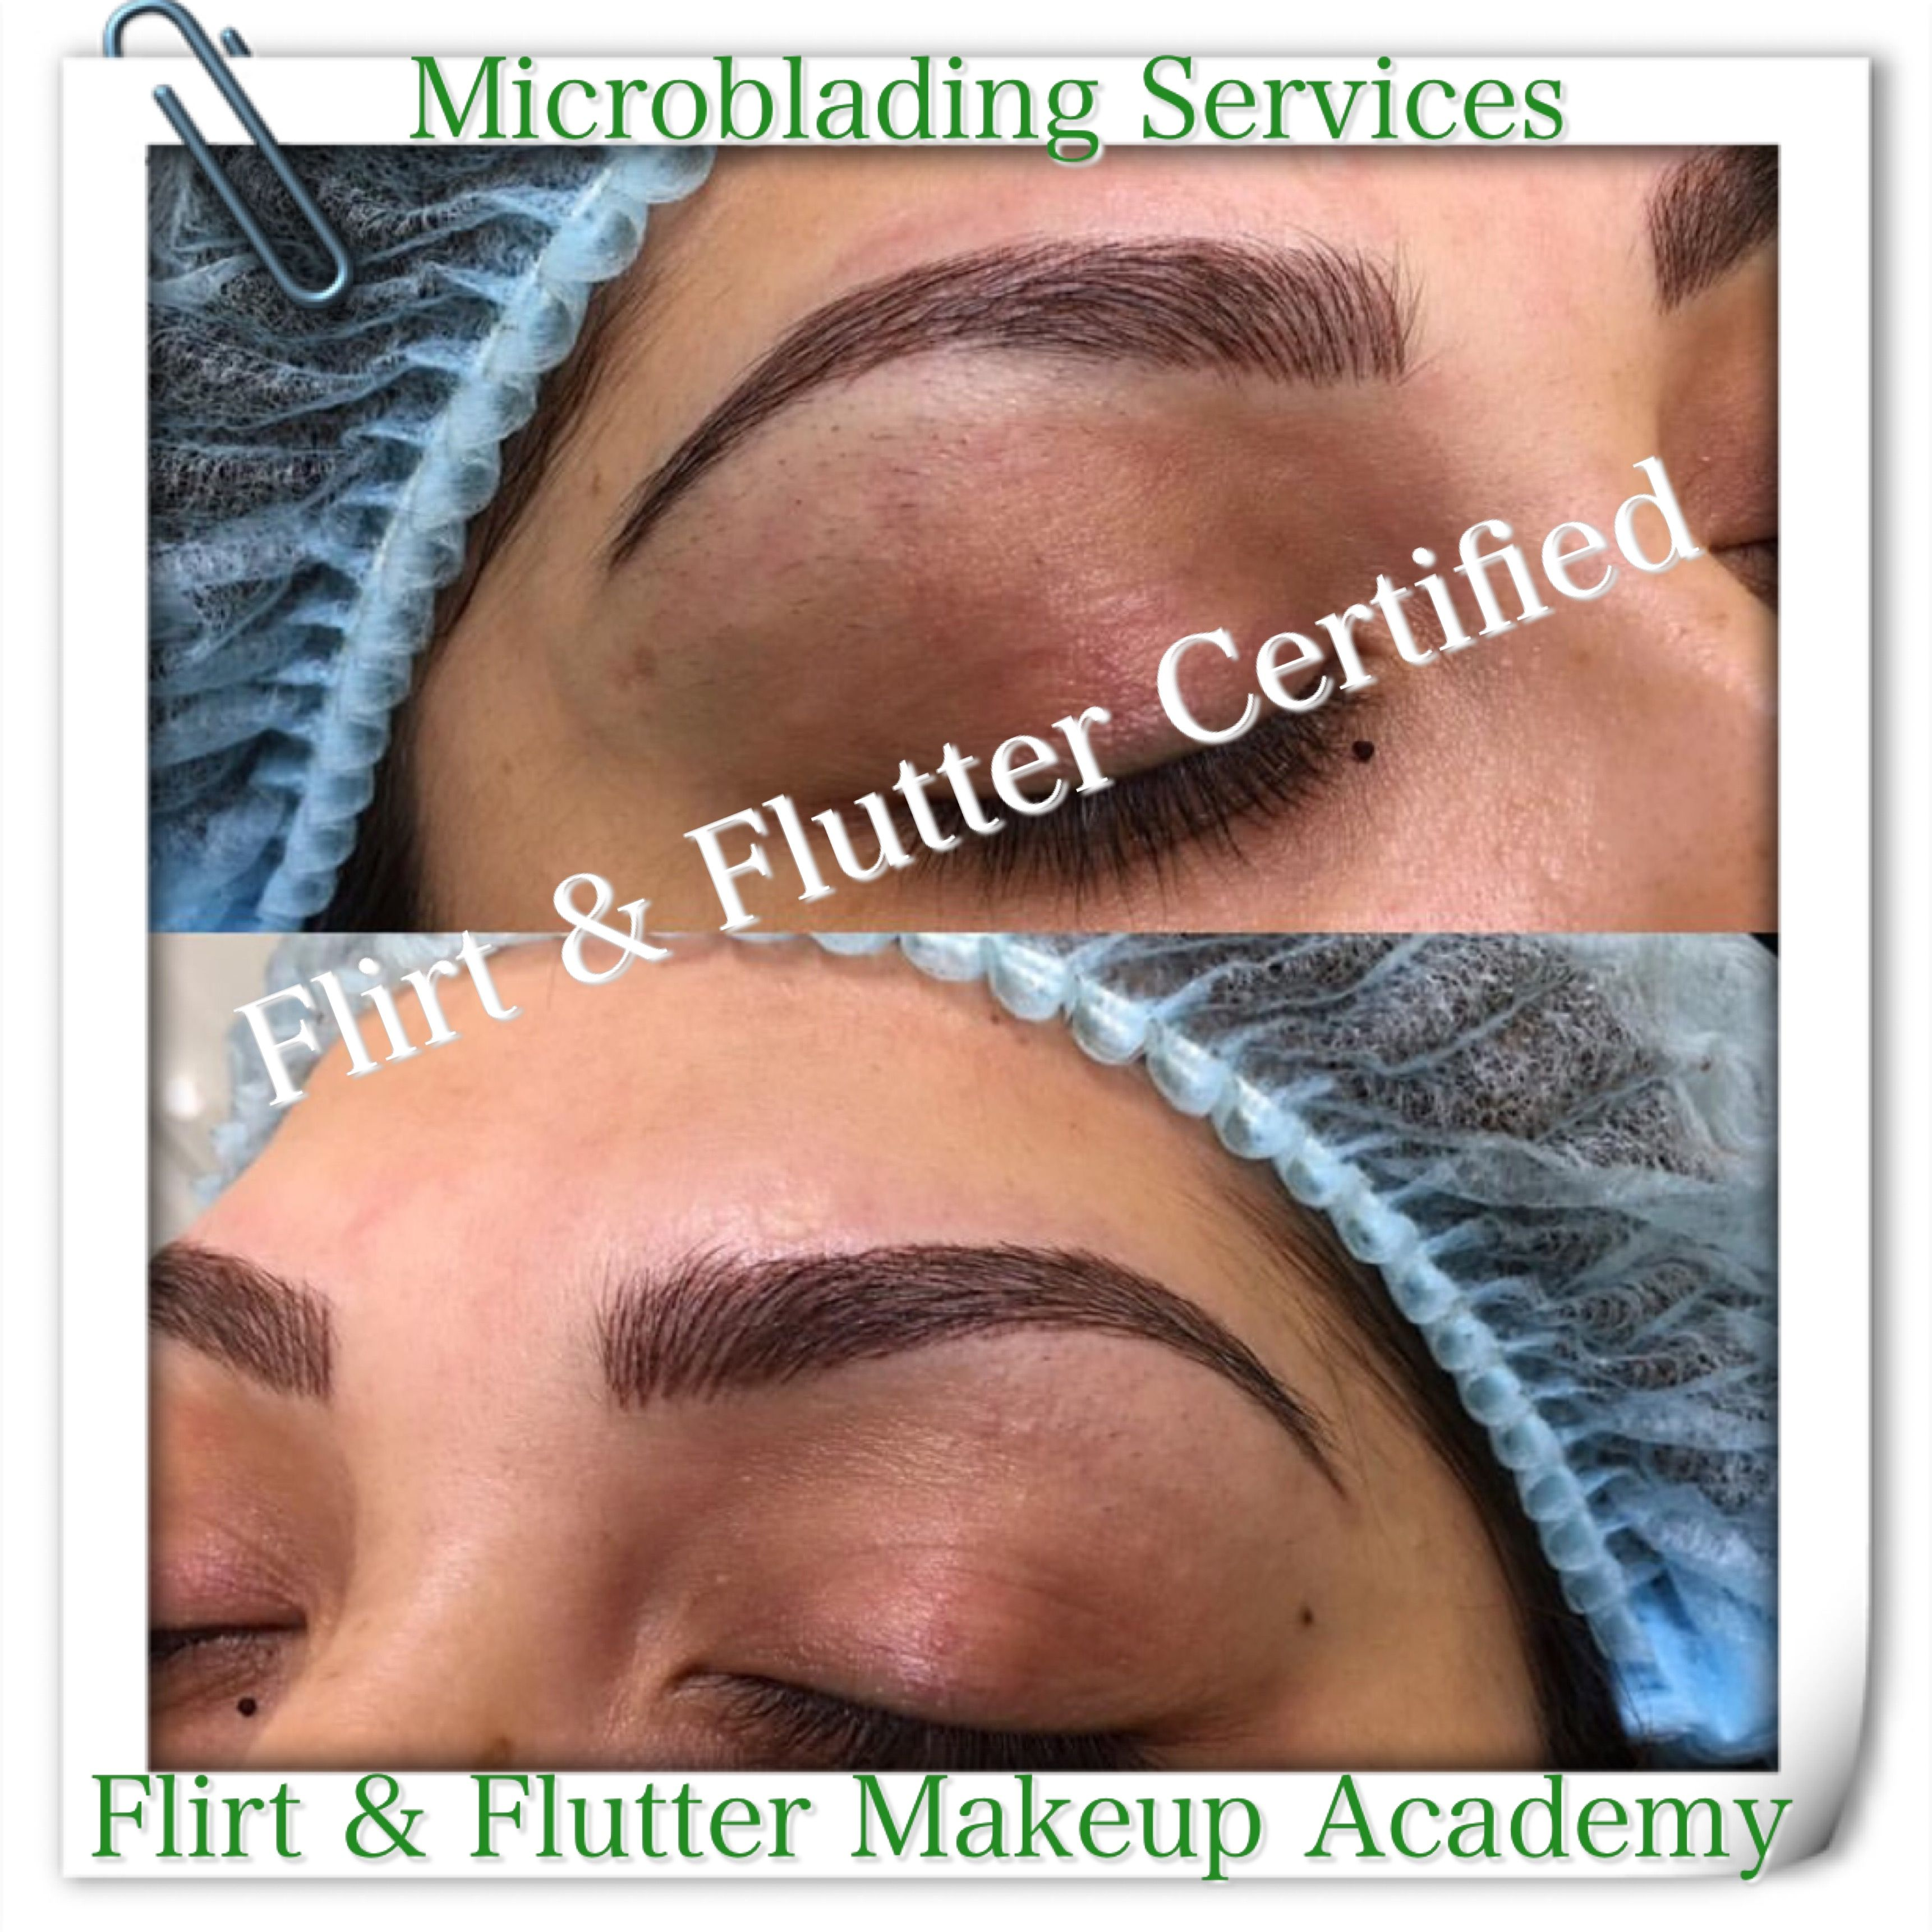 Pin by Flirt & Flutter Beauty Boutique on MICROBLADING